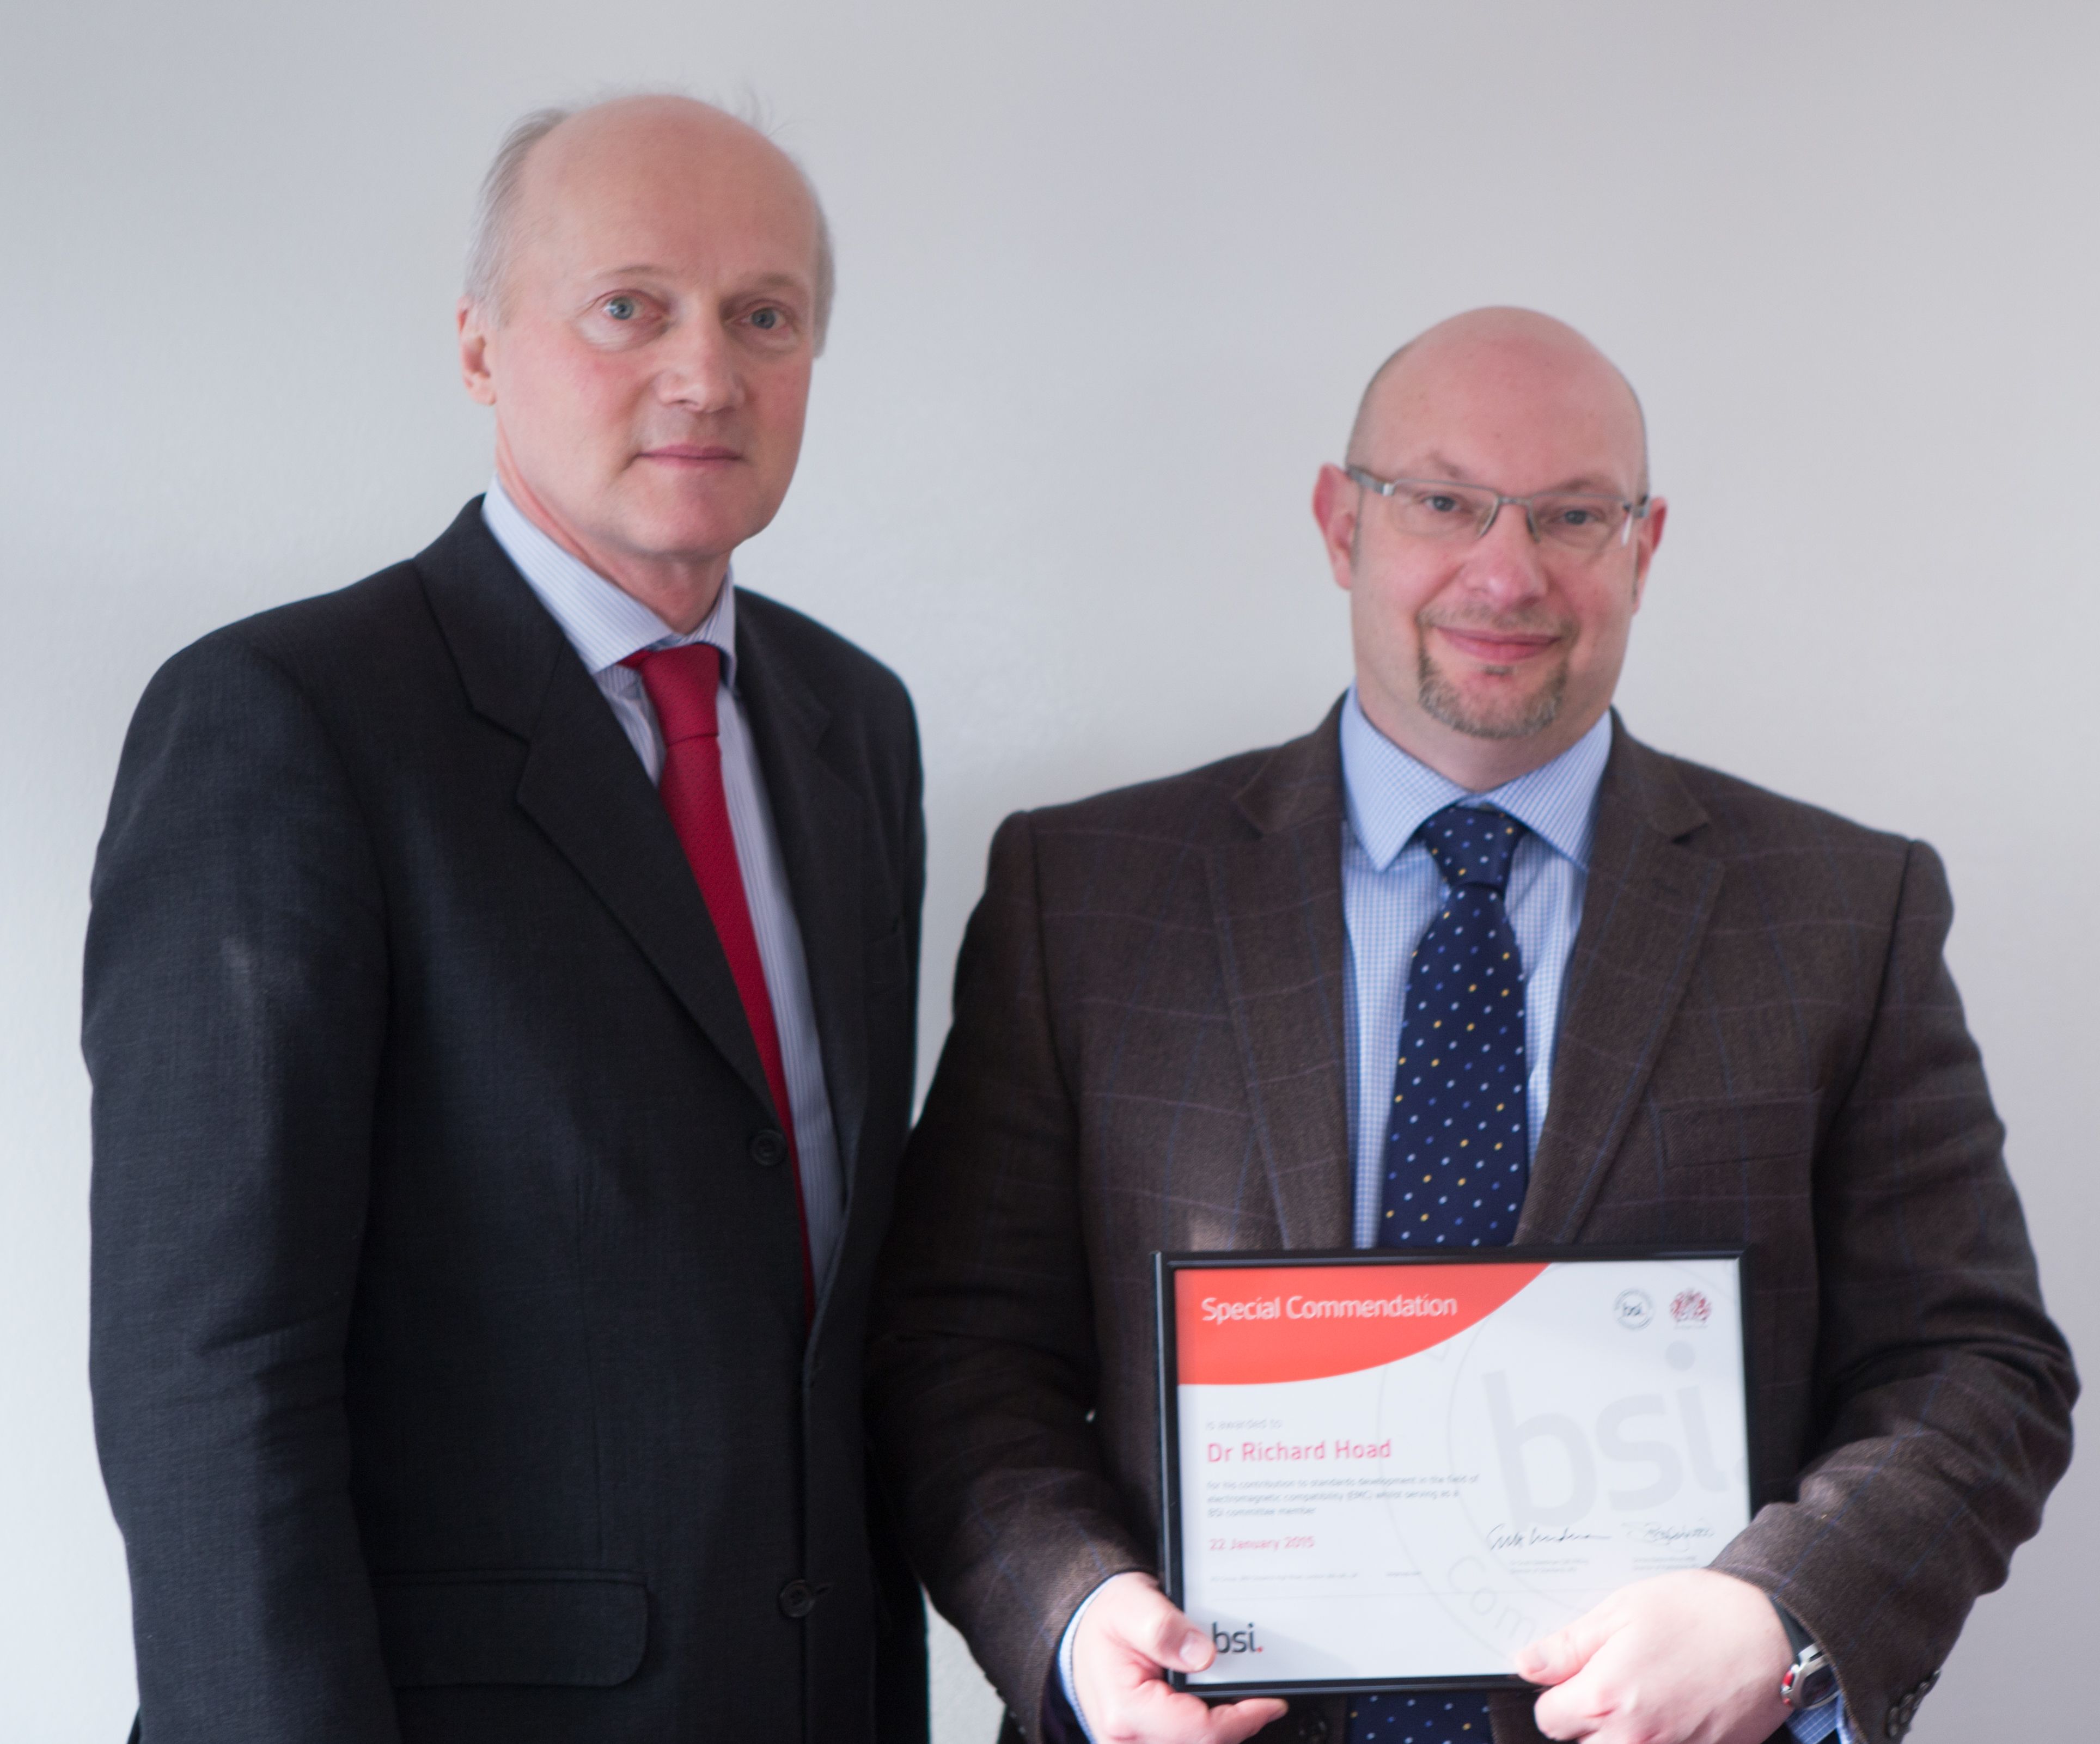 Richard Hoad (right) receives his award from Dr Scott Steedman, BSI